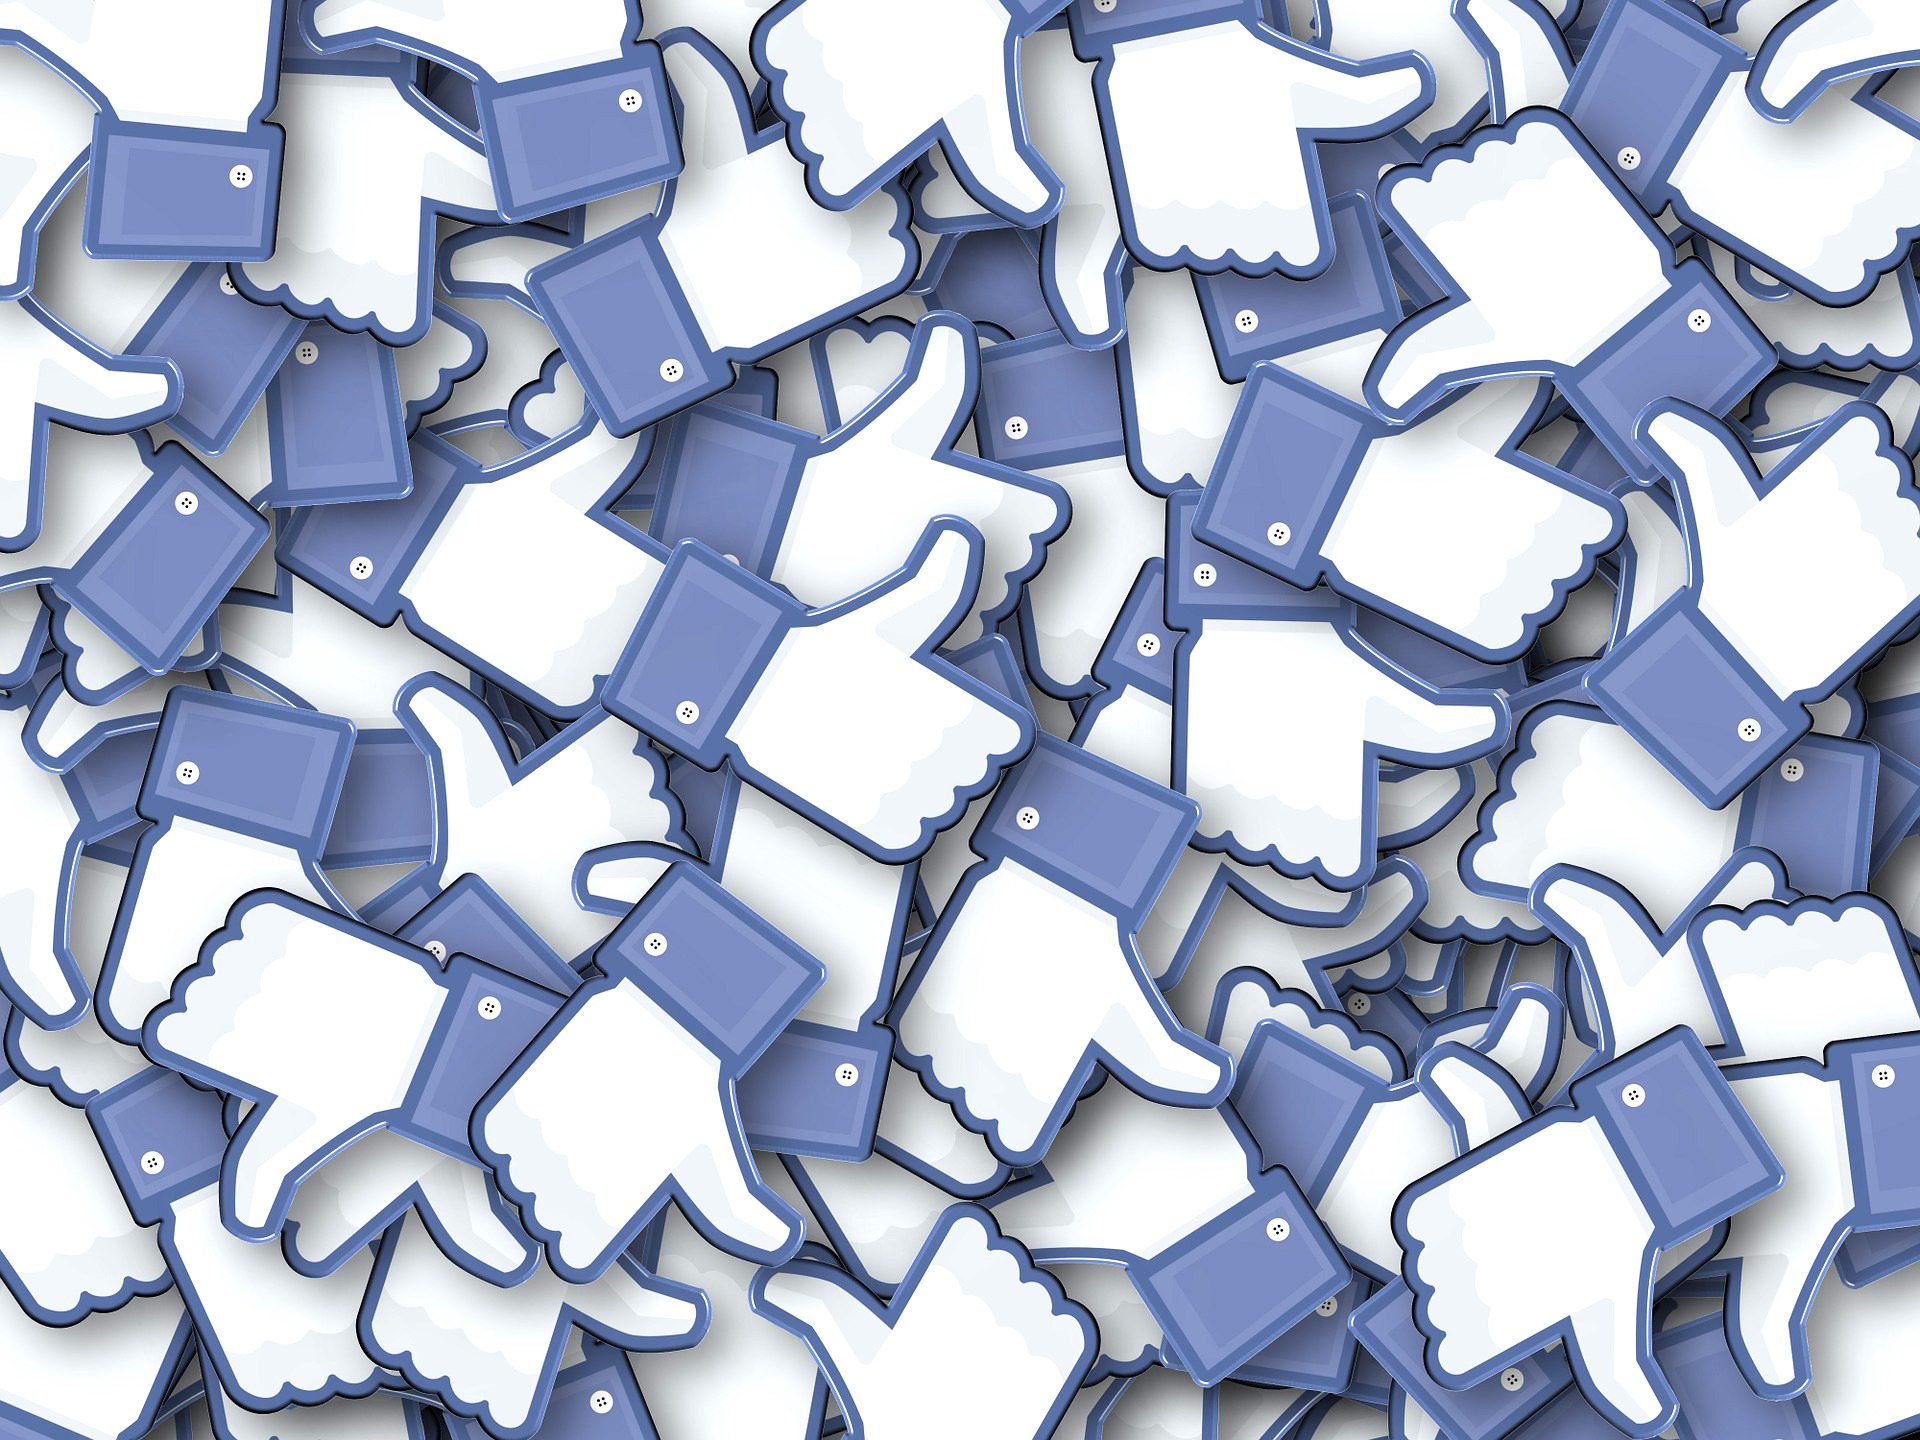 Image: many Facebook like buttons in a pile